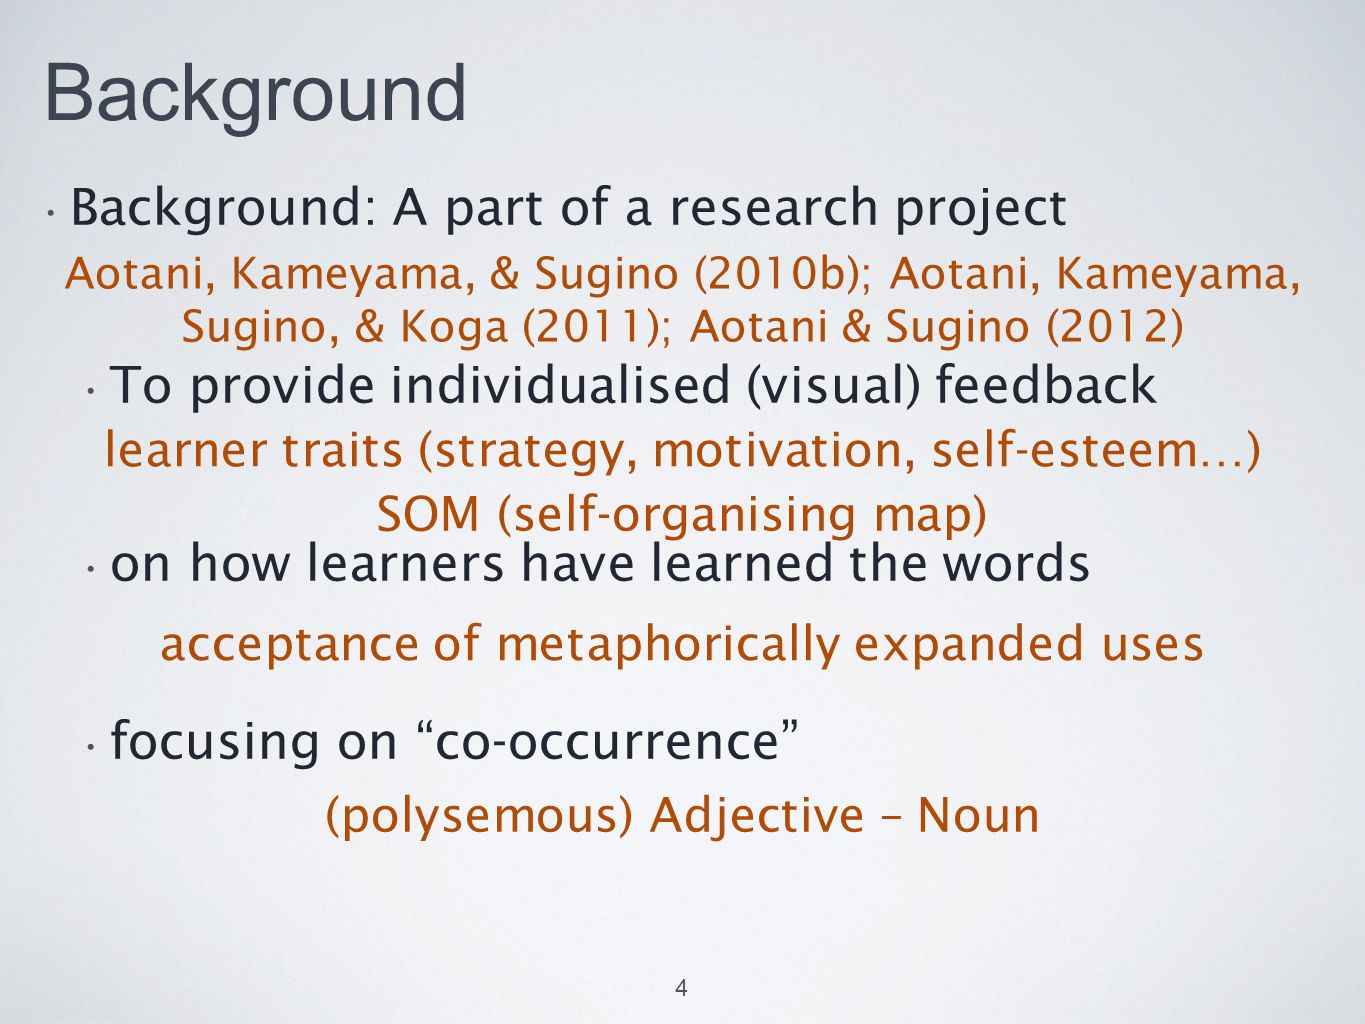 Background Background: A part of a research project To provide individualised (visual) feedback on how learners have learned the words focusing on co-occurrence 4 Aotani, Kameyama, & Sugino (2010b); Aotani, Kameyama, Sugino, & Koga (2011); Aotani & Sugino (2012) (polysemous) Adjective – Noun acceptance of metaphorically expanded uses learner traits (strategy, motivation, self-esteem…) SOM (self-organising map)